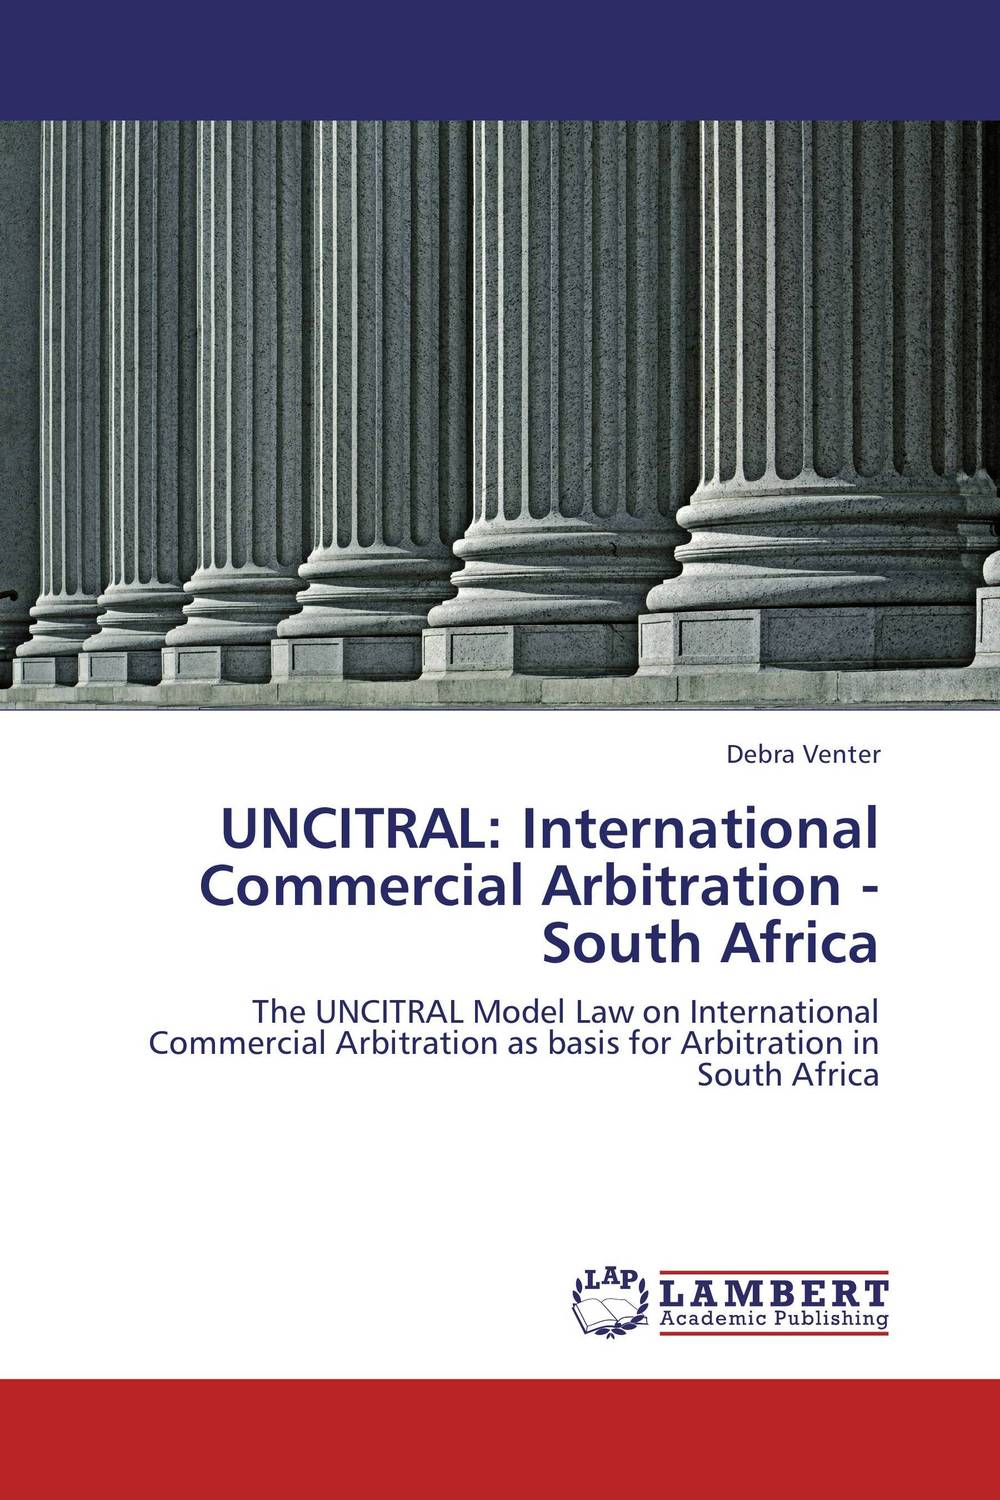 UNCITRAL: International Commercial Arbitration - South Africa international commercial disputes